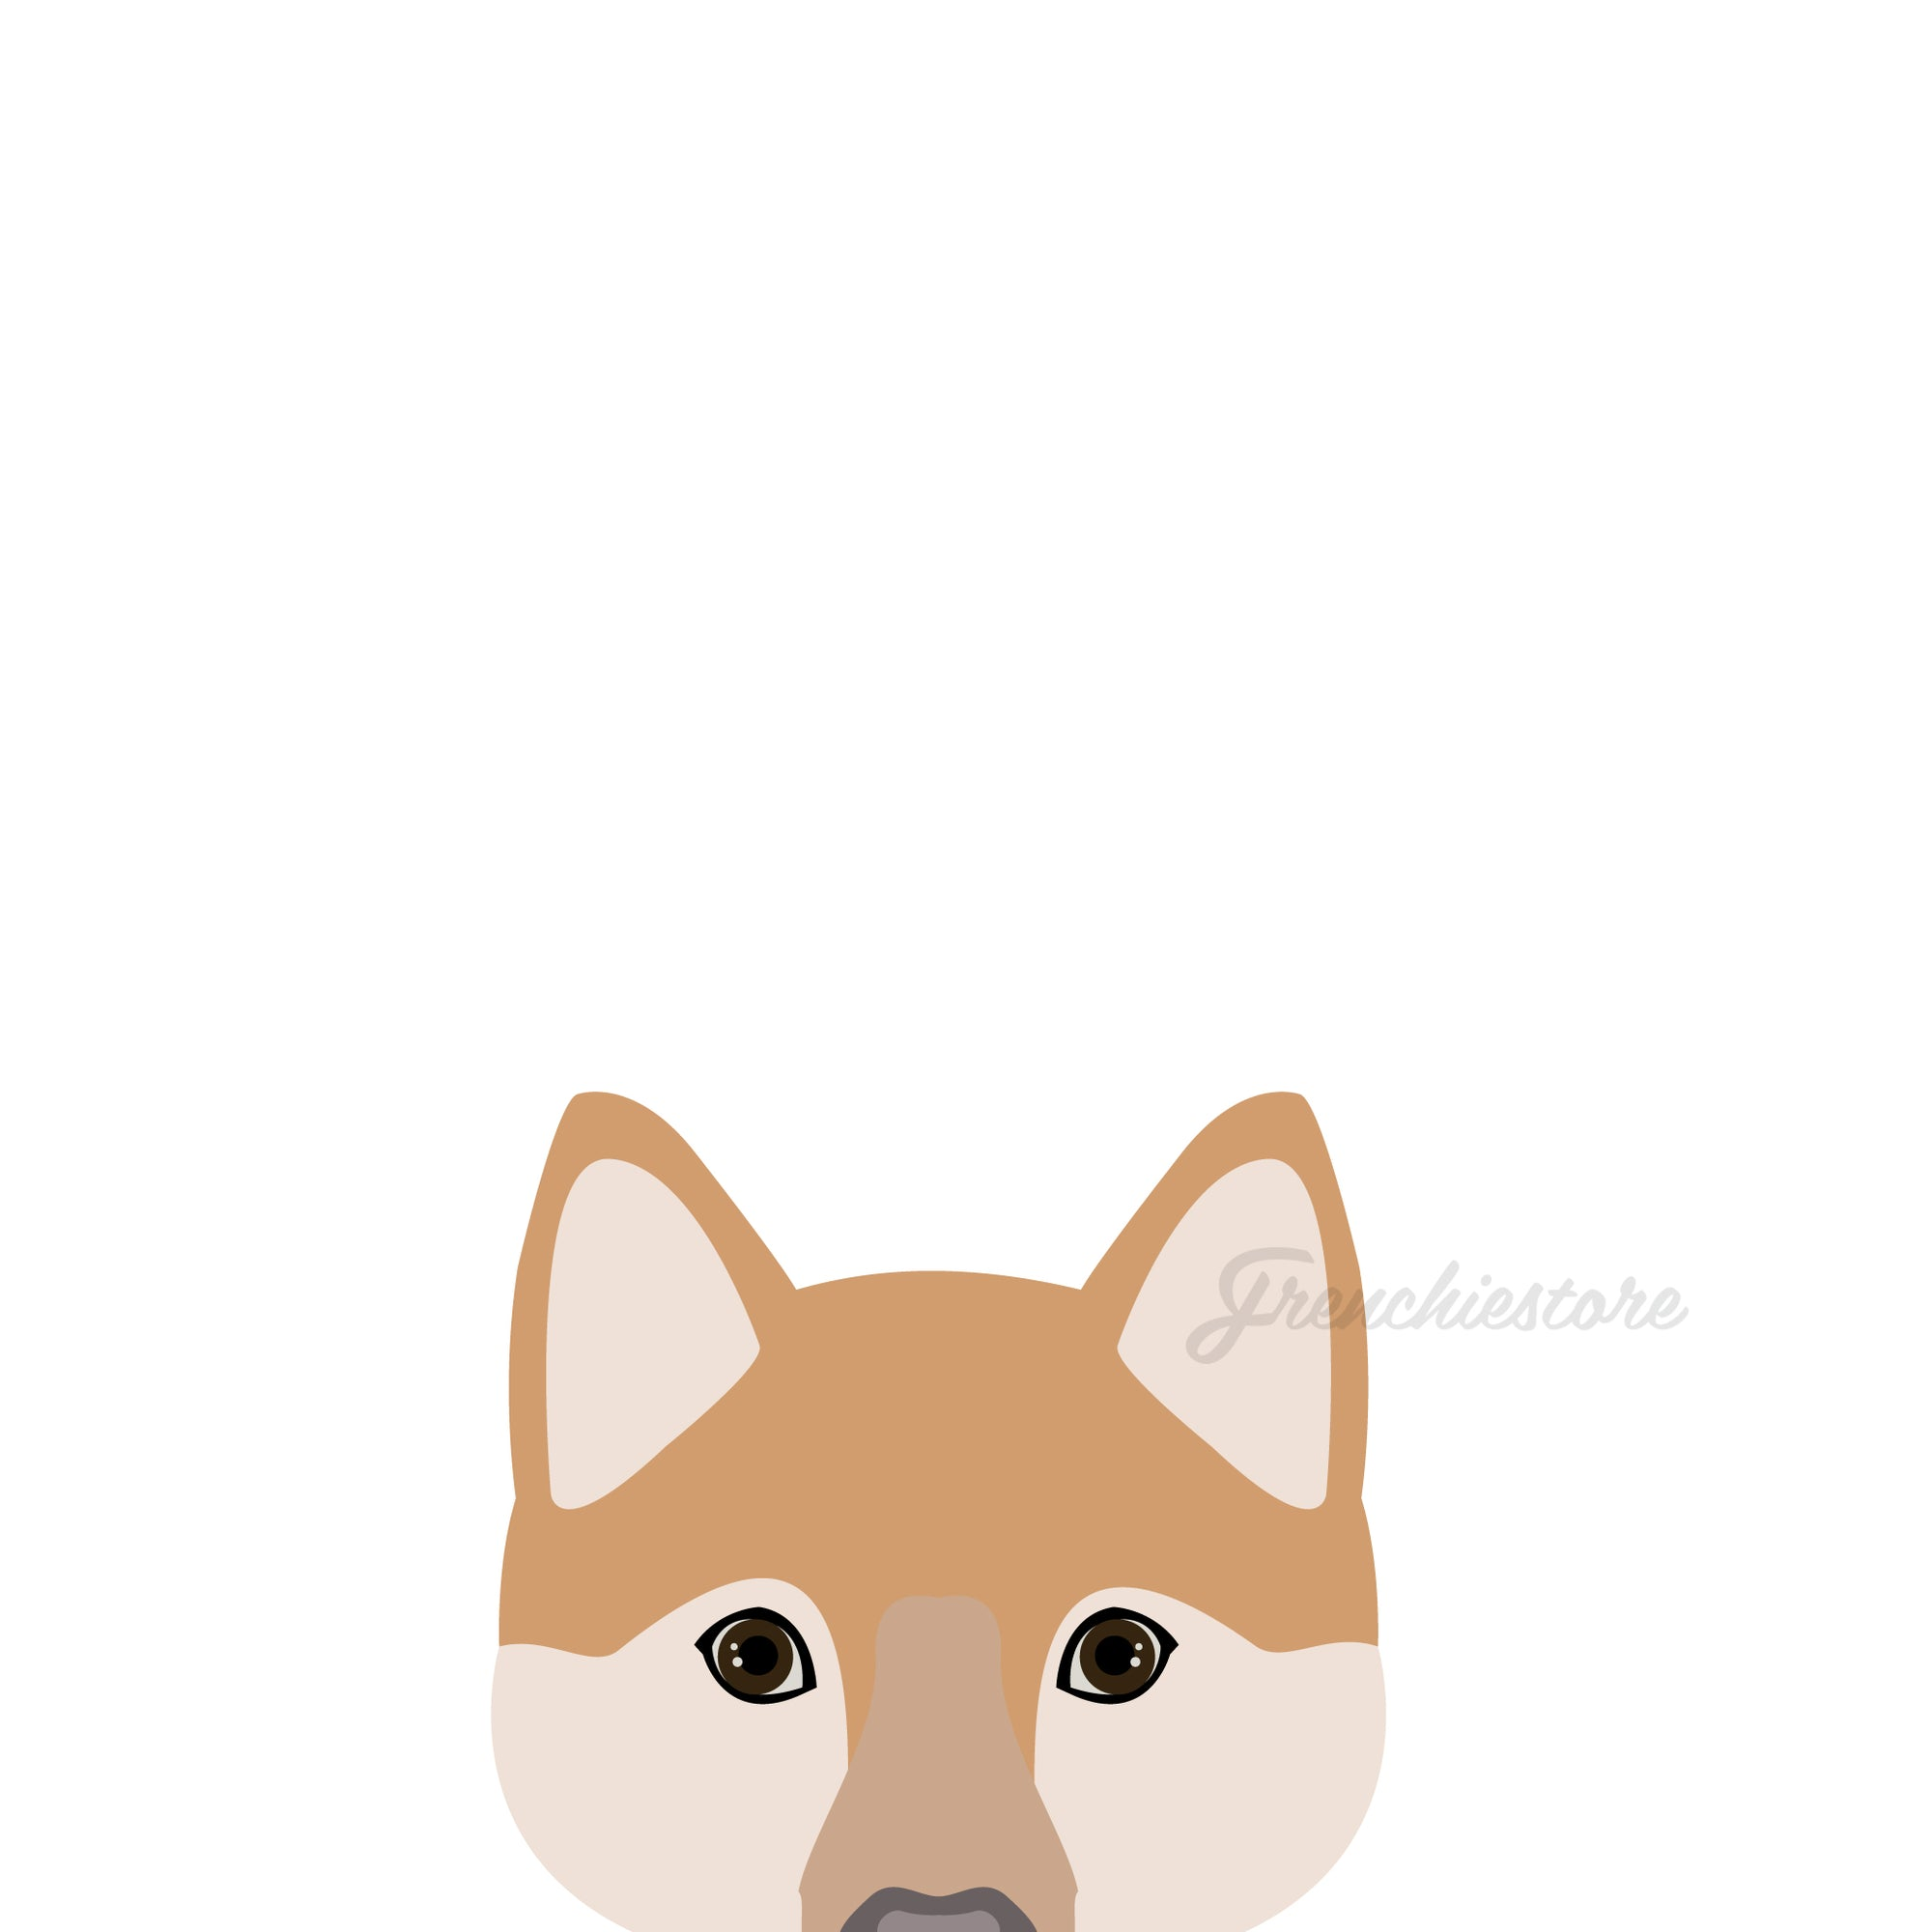 Shiba Inu Dog Sticker | Frenchiestore |  Shiba Inu Car Decal, Frenchie Dog, French Bulldog pet products